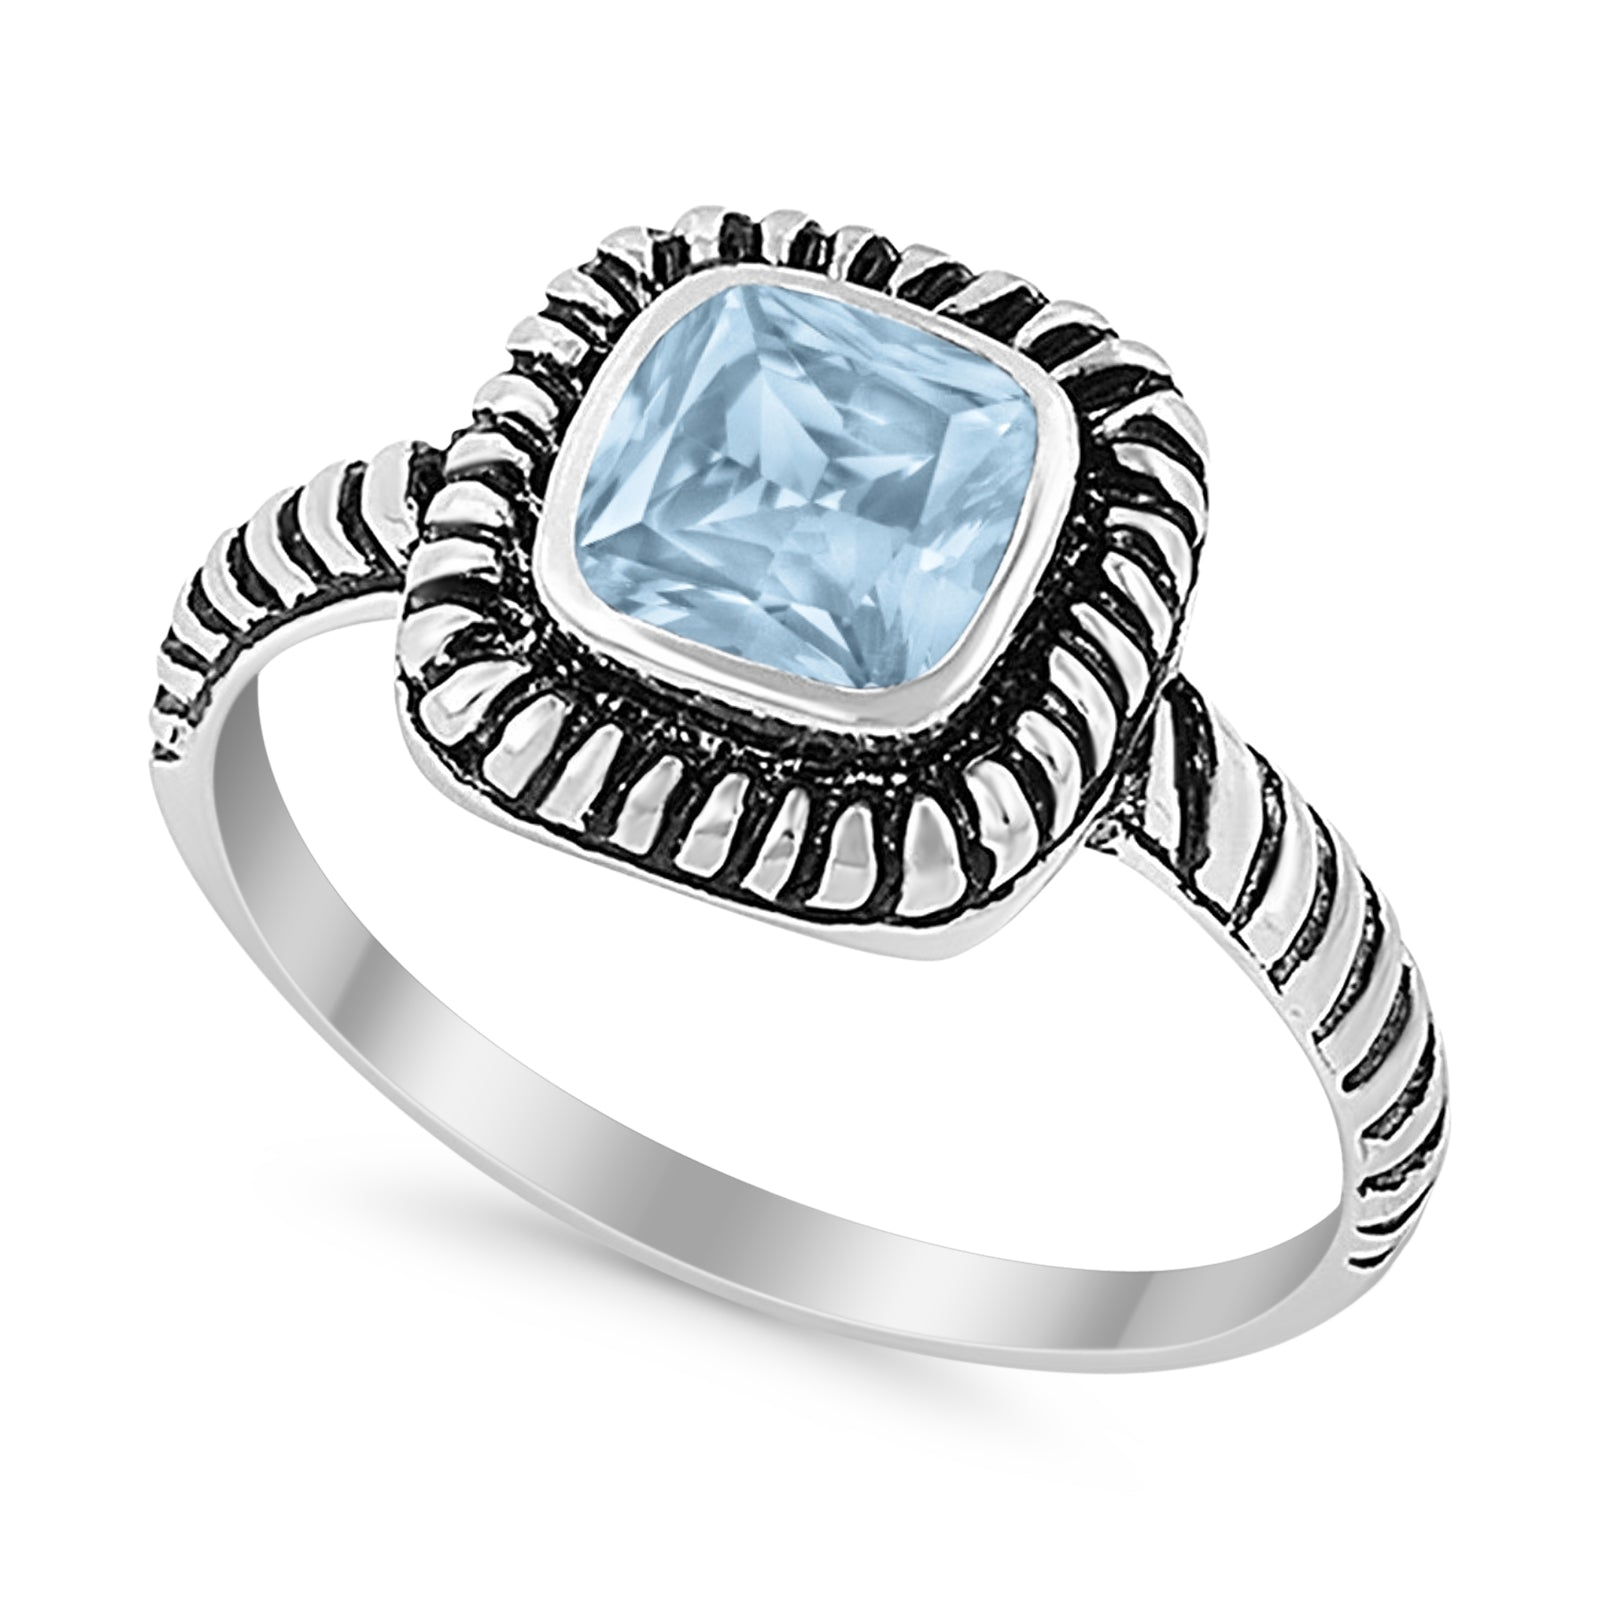 Princess Cut Simulated Aquamarine Cubic Zirconia Oxidized Design Ring 925 Sterling Silver